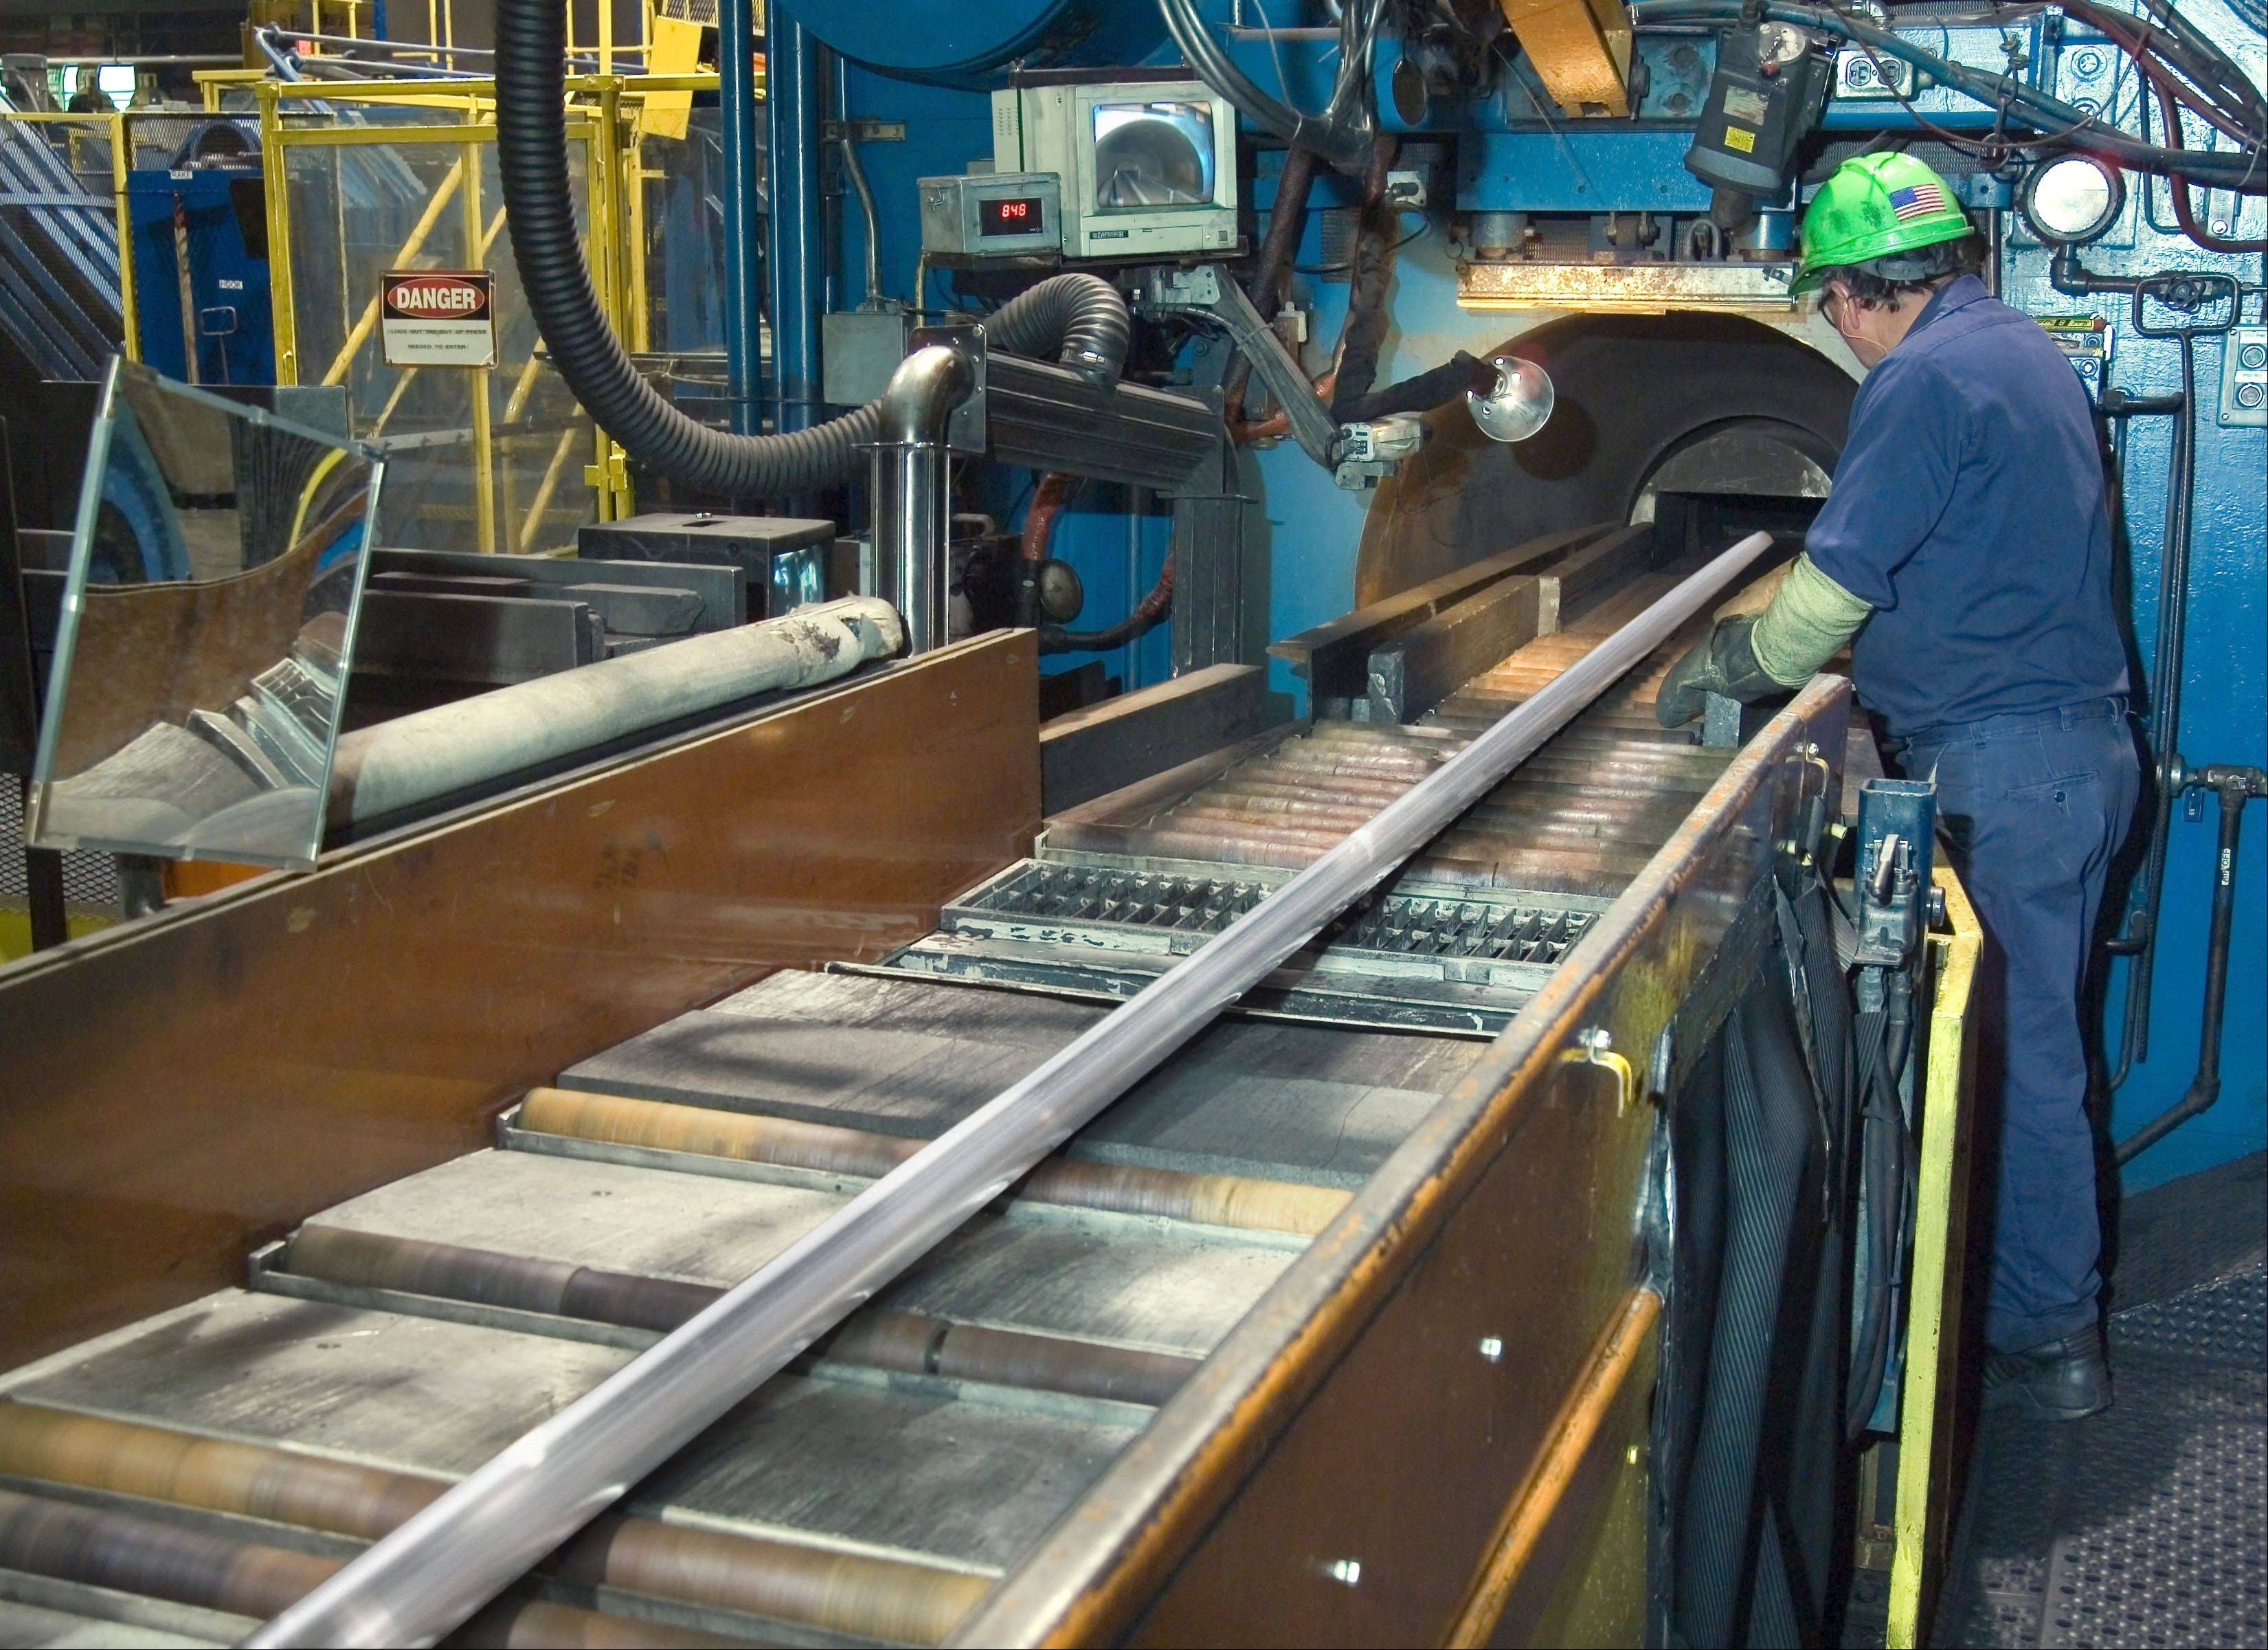 Pieces of aluminum are shaped by this press in a factory run by Sapa Extrusions, which is headquartered in Rosemont.